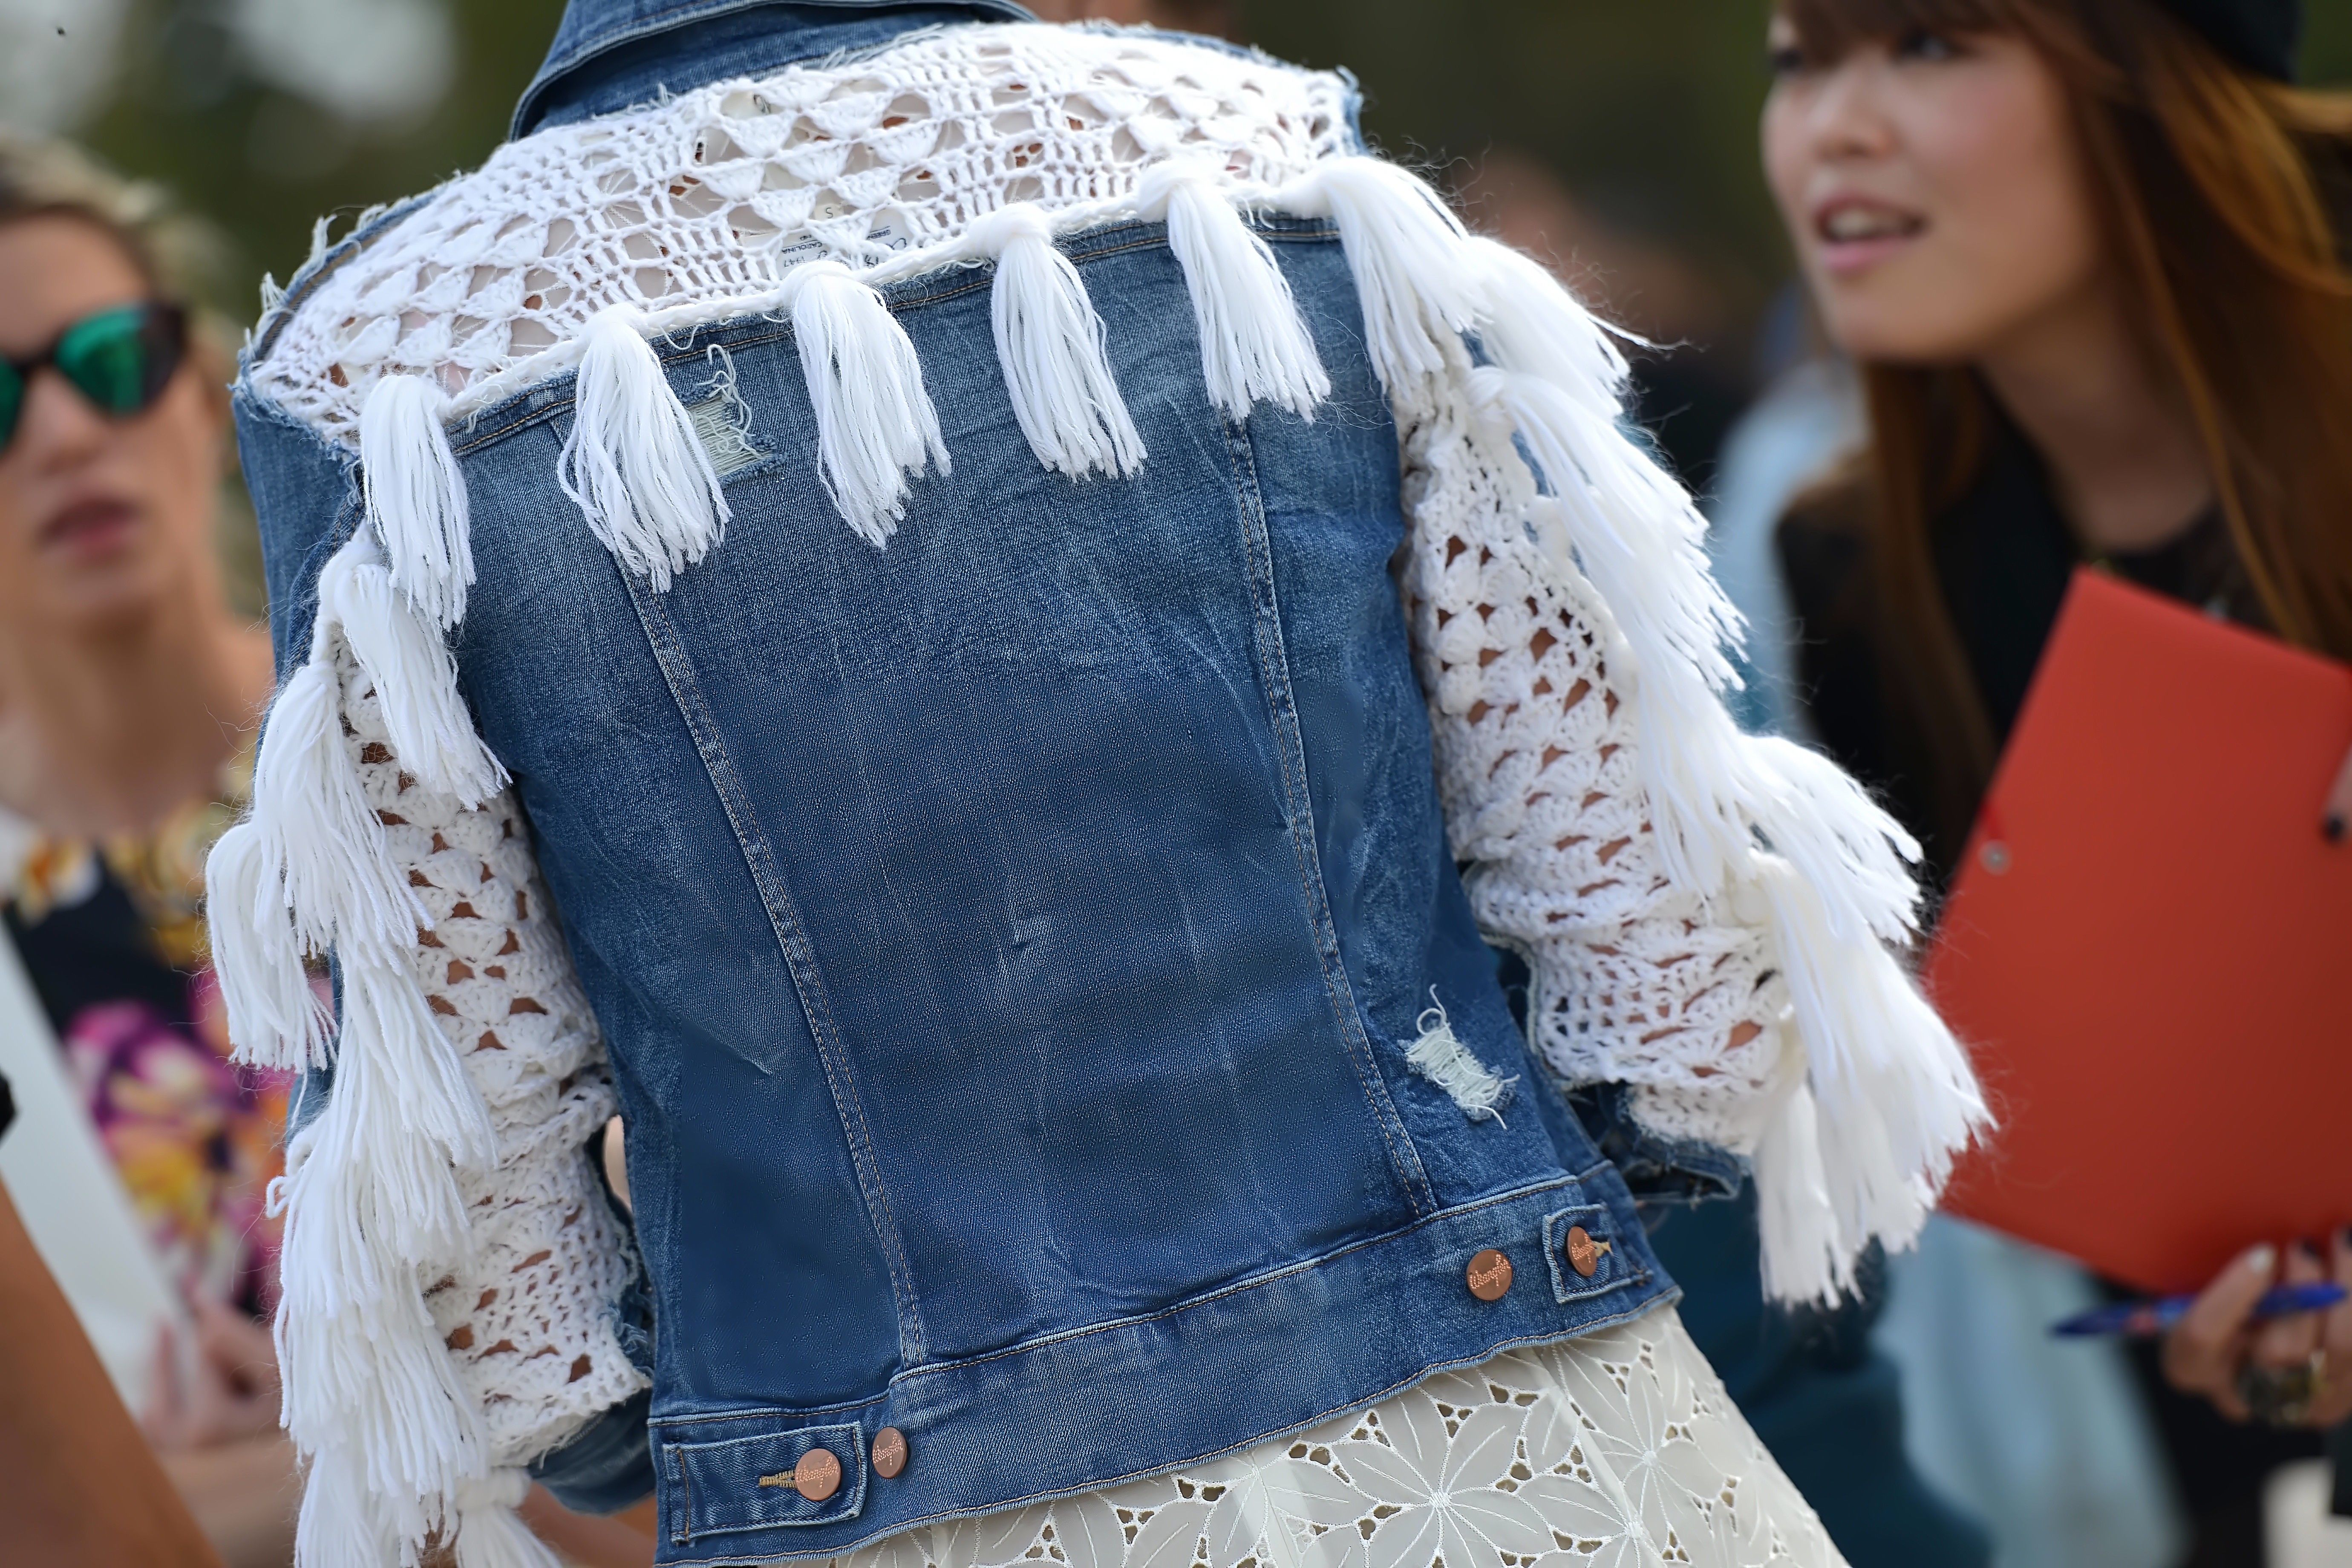 Check out this crazy denim jacket ©TheStreetmuse